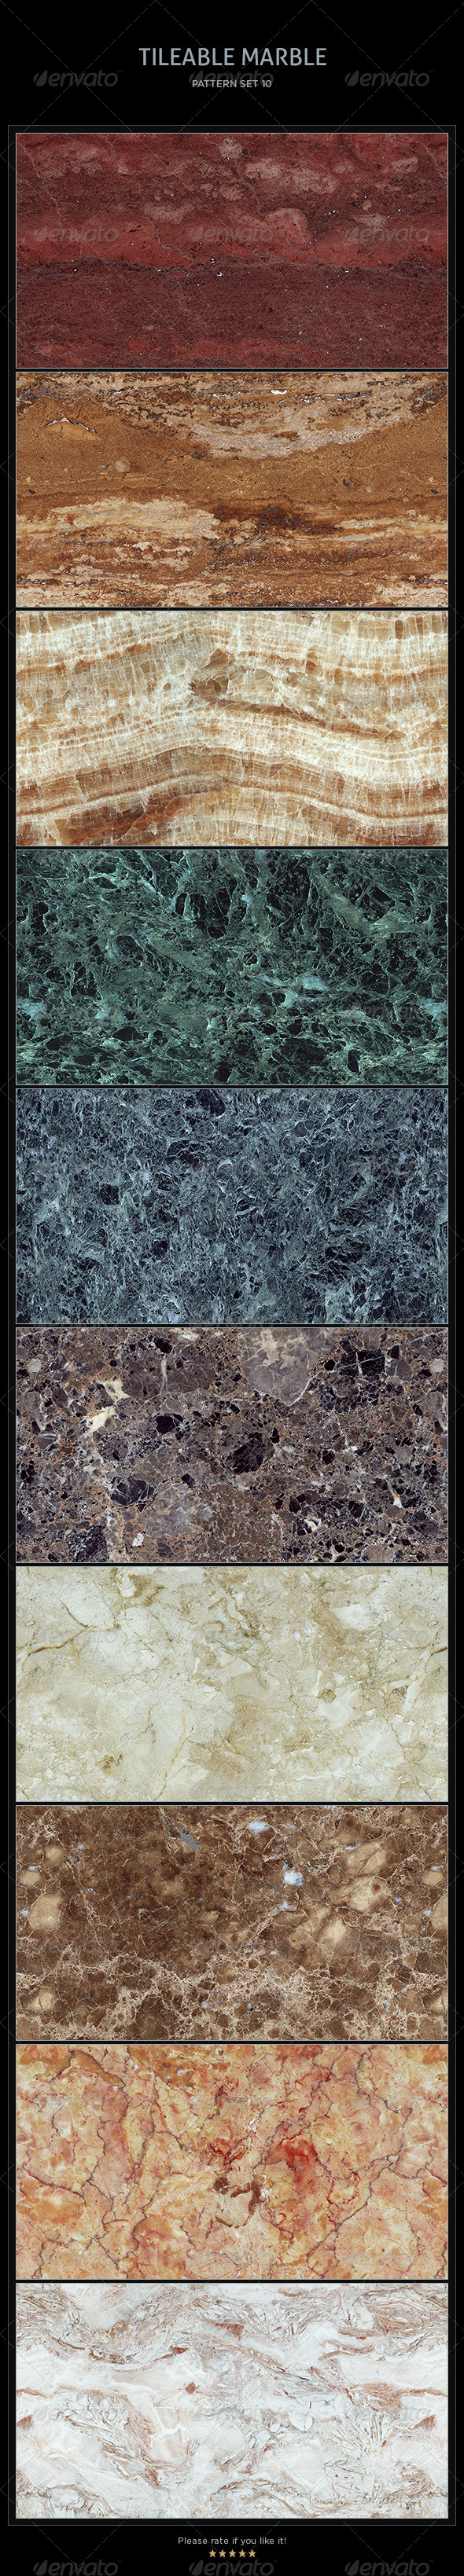 GraphicRiver 10 Tileable Marble Textures Patterns 4456043